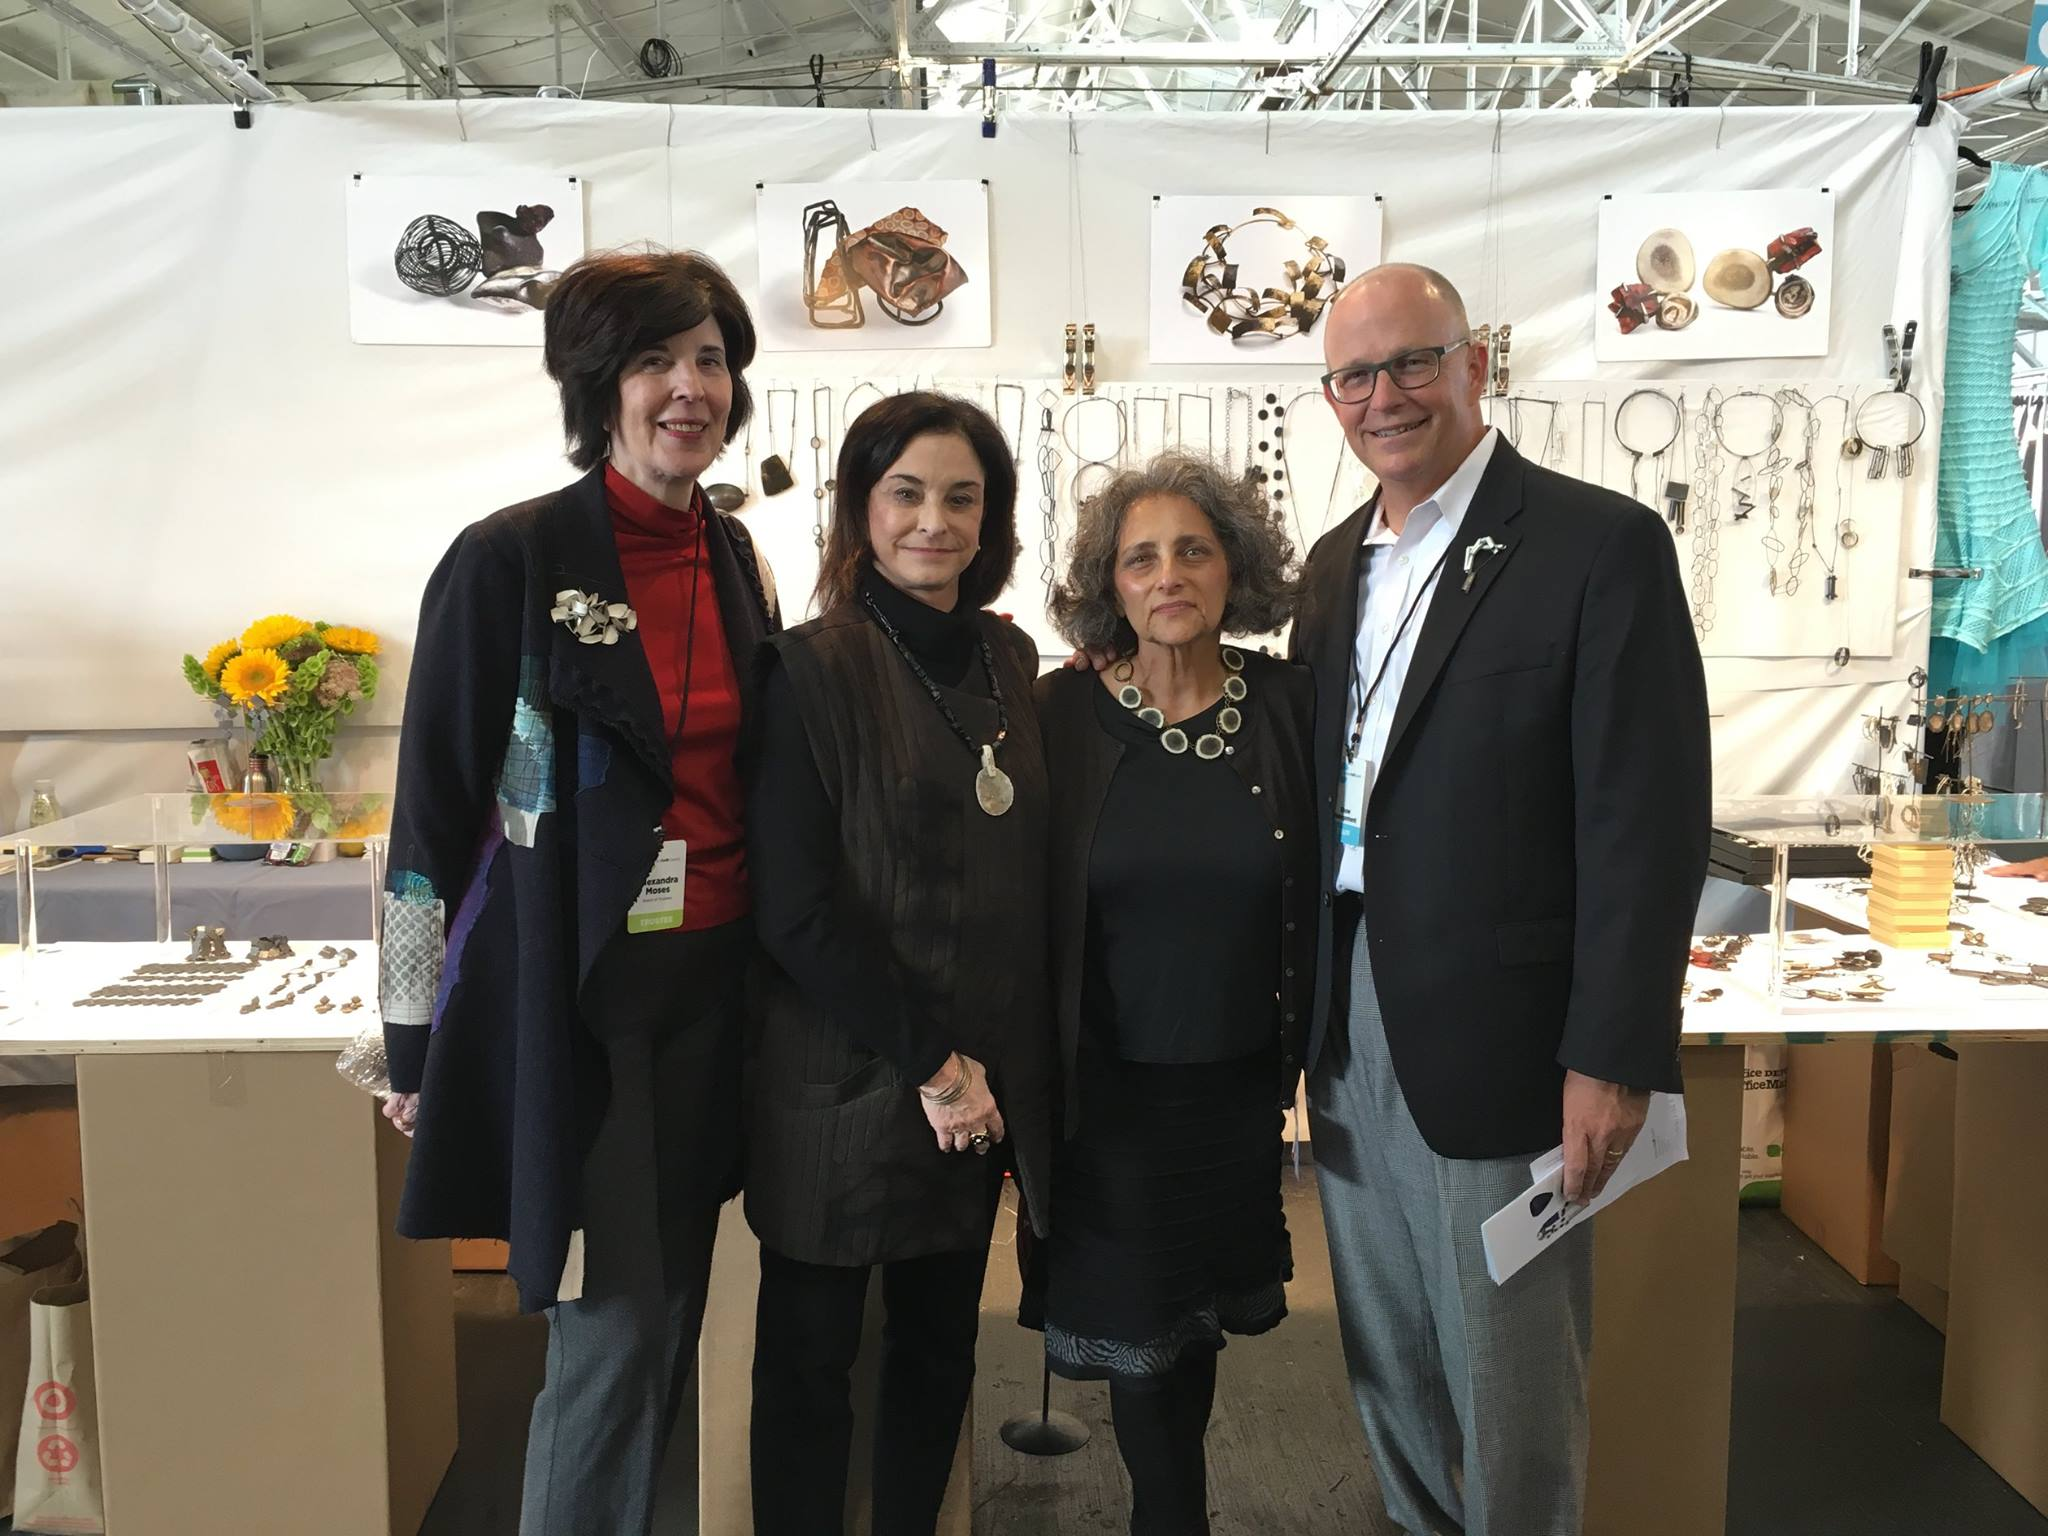 Alex Moses Barbara Waldman ACC show artist Biba Schutz and former ACC executive director Chris Amundsen pictured at the 2016 American Craft Show in San Francisco